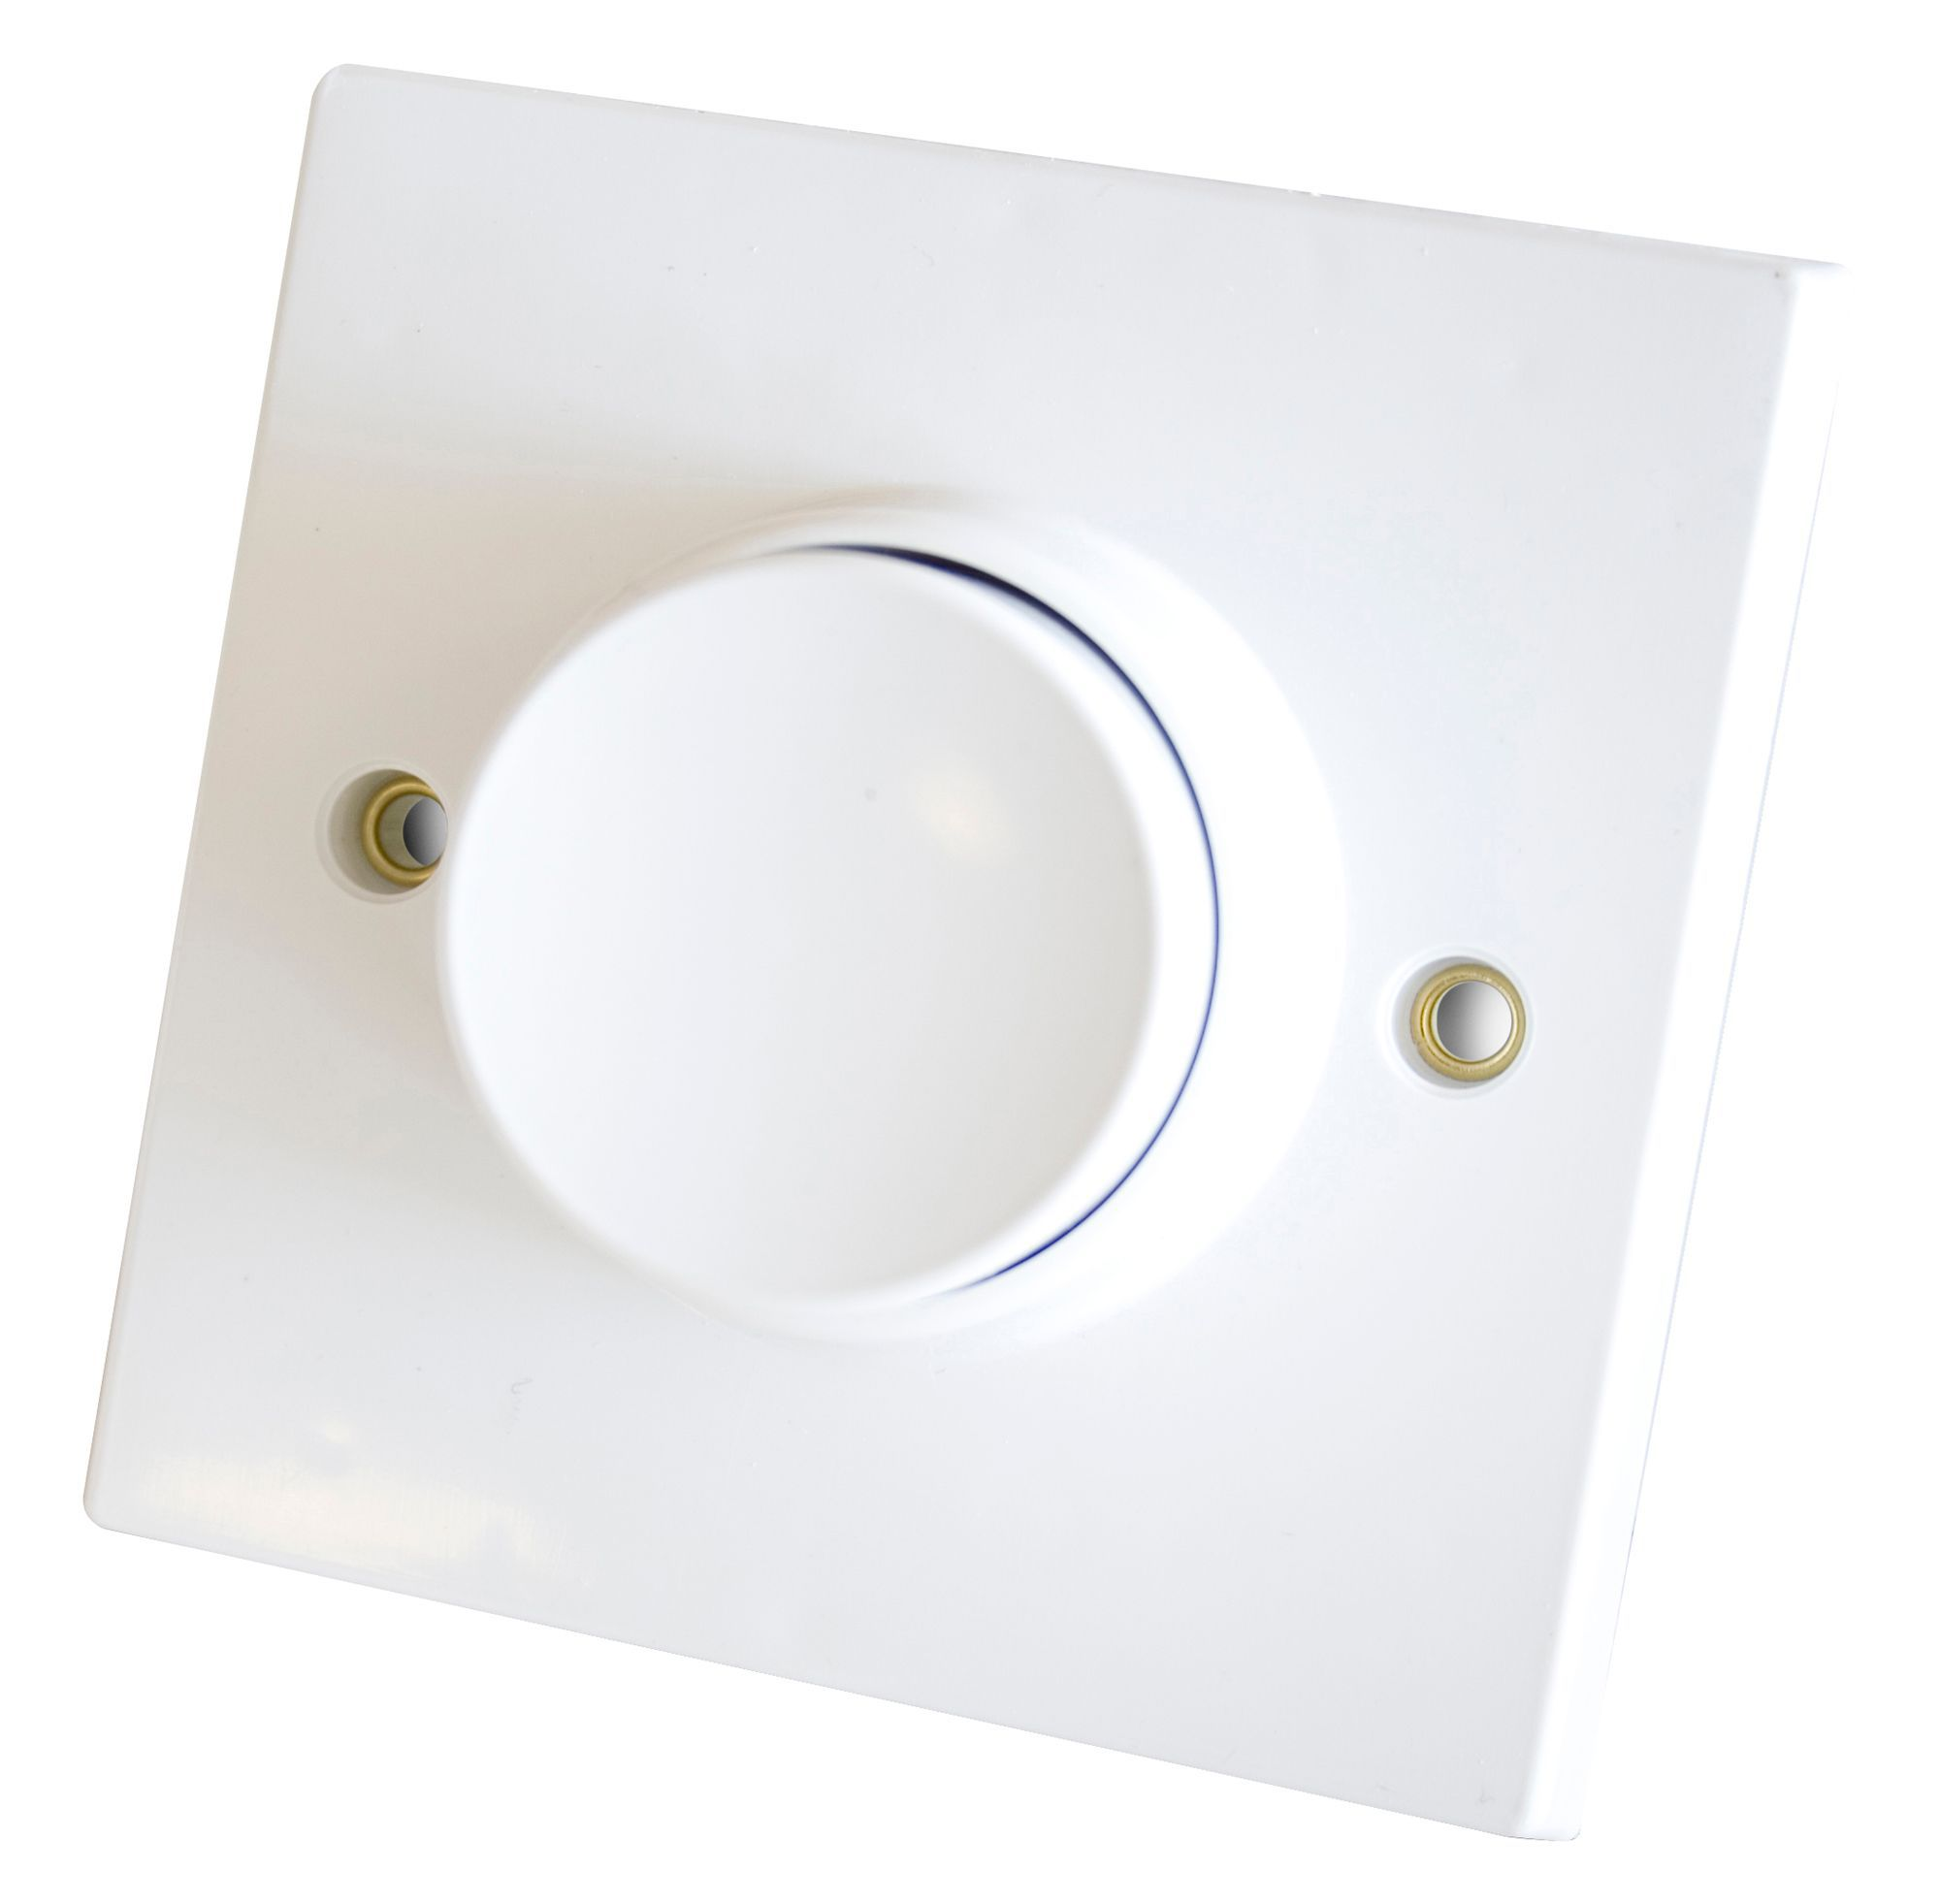 Bathroom Light Switches B&Q corelectric 6a 2-way single white plastic timer light switch